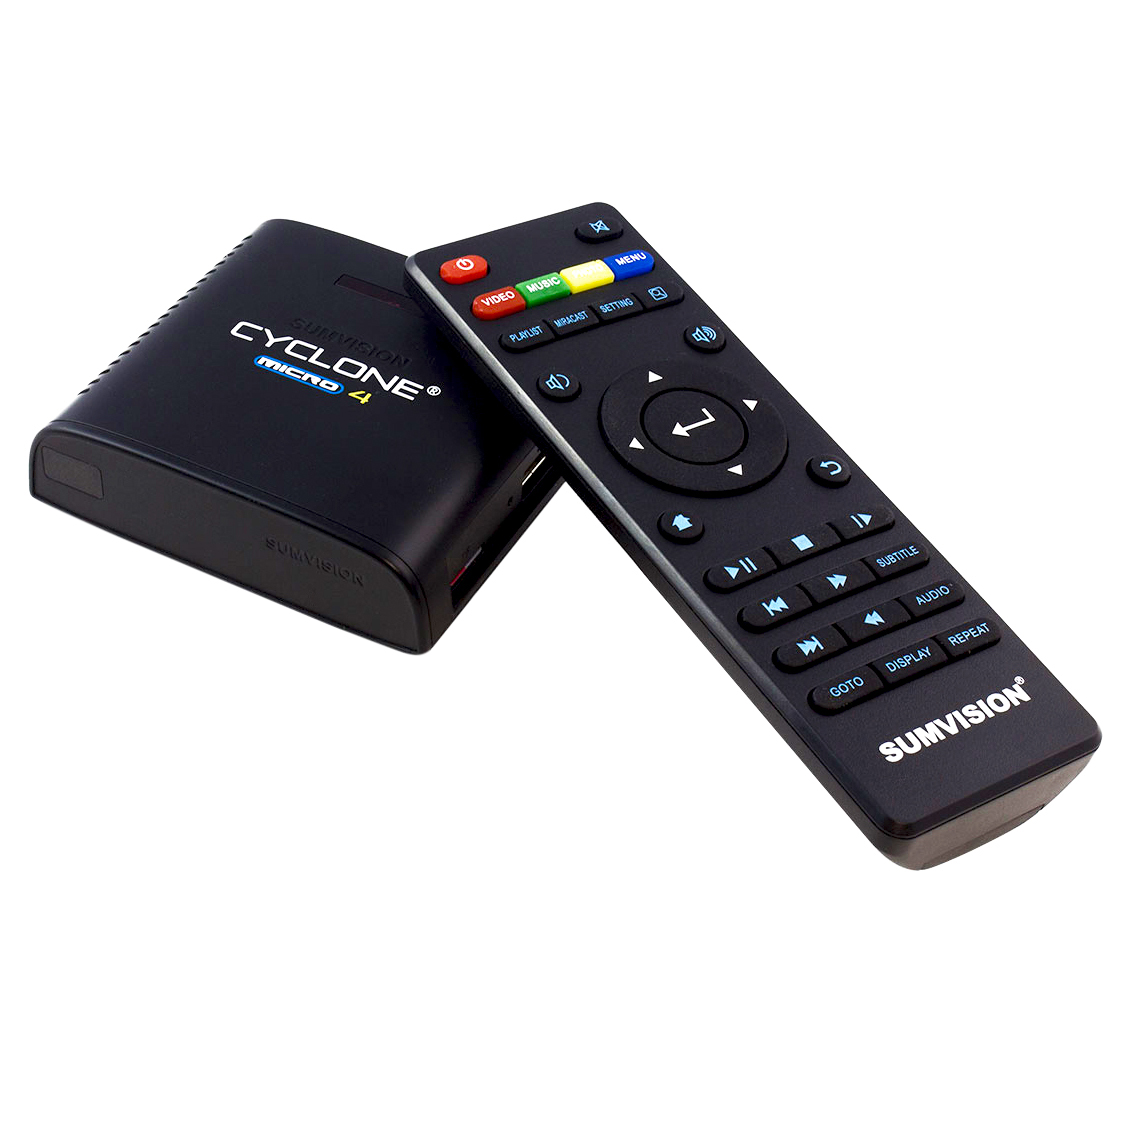 Sumvision Cyclone Micro 4 With Miracast and Network DLNA